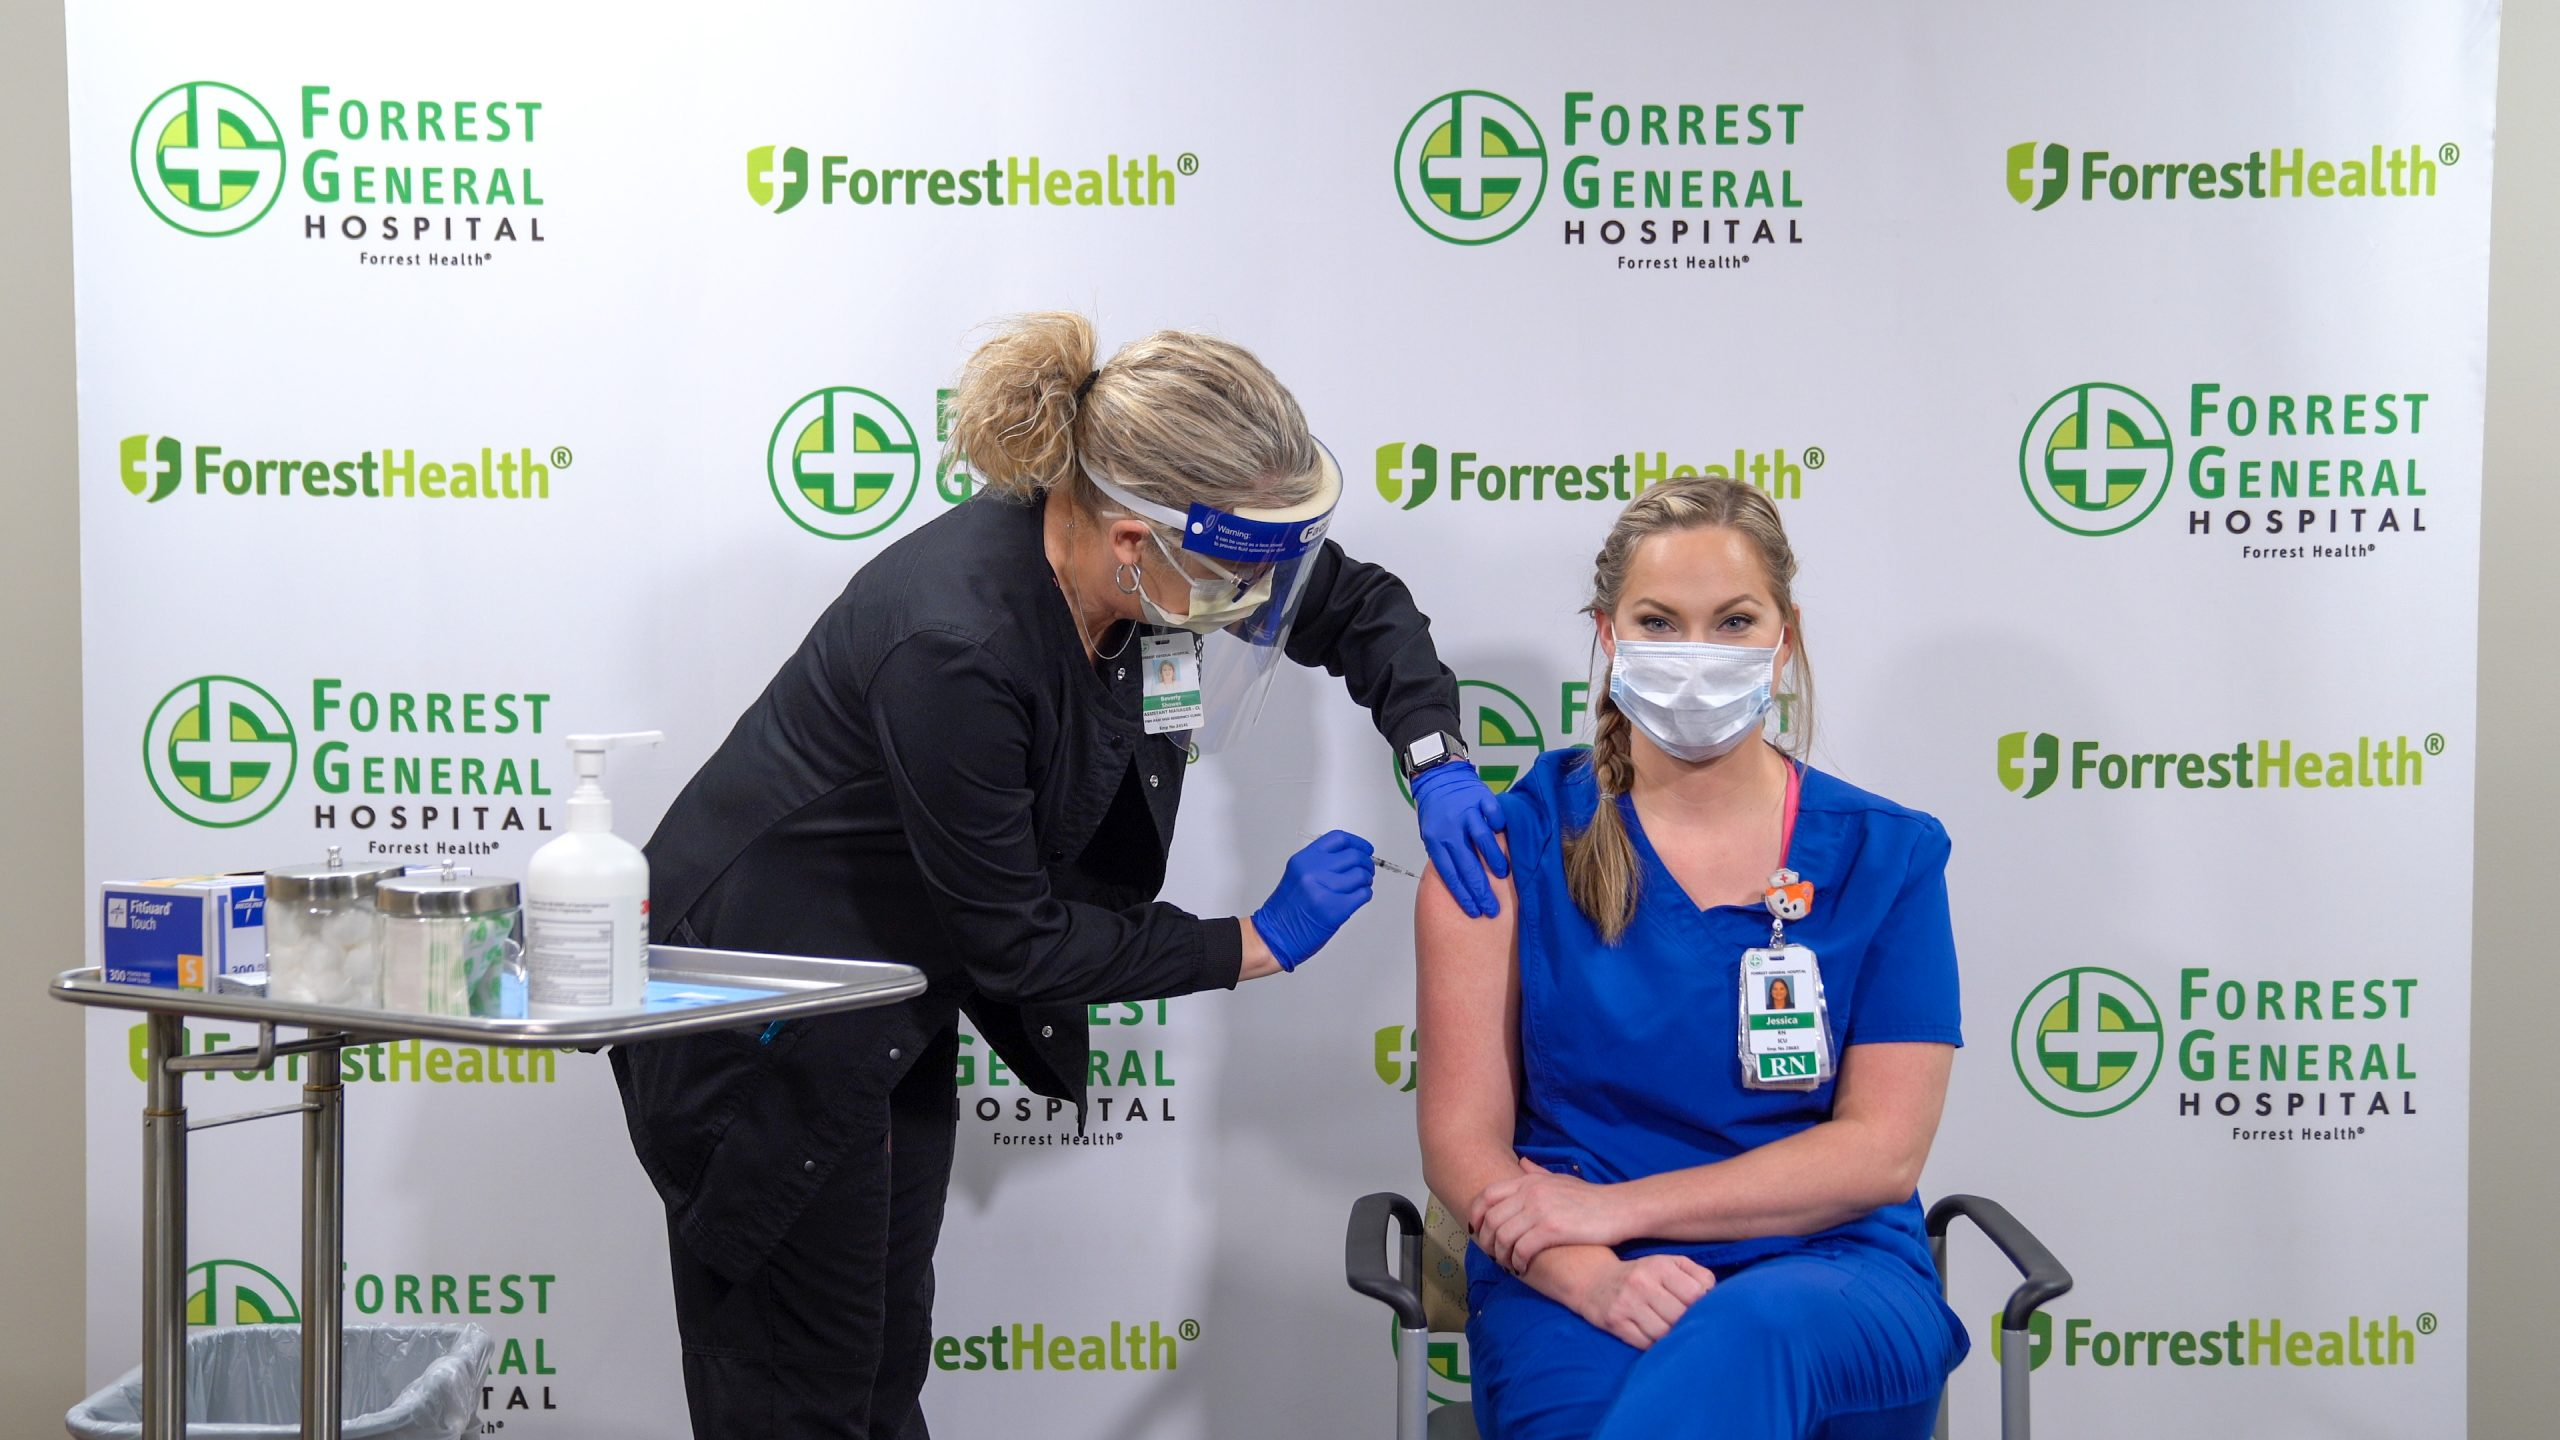 Forrest General Hospital Employees Begin Receiving COVID-19 Vaccine